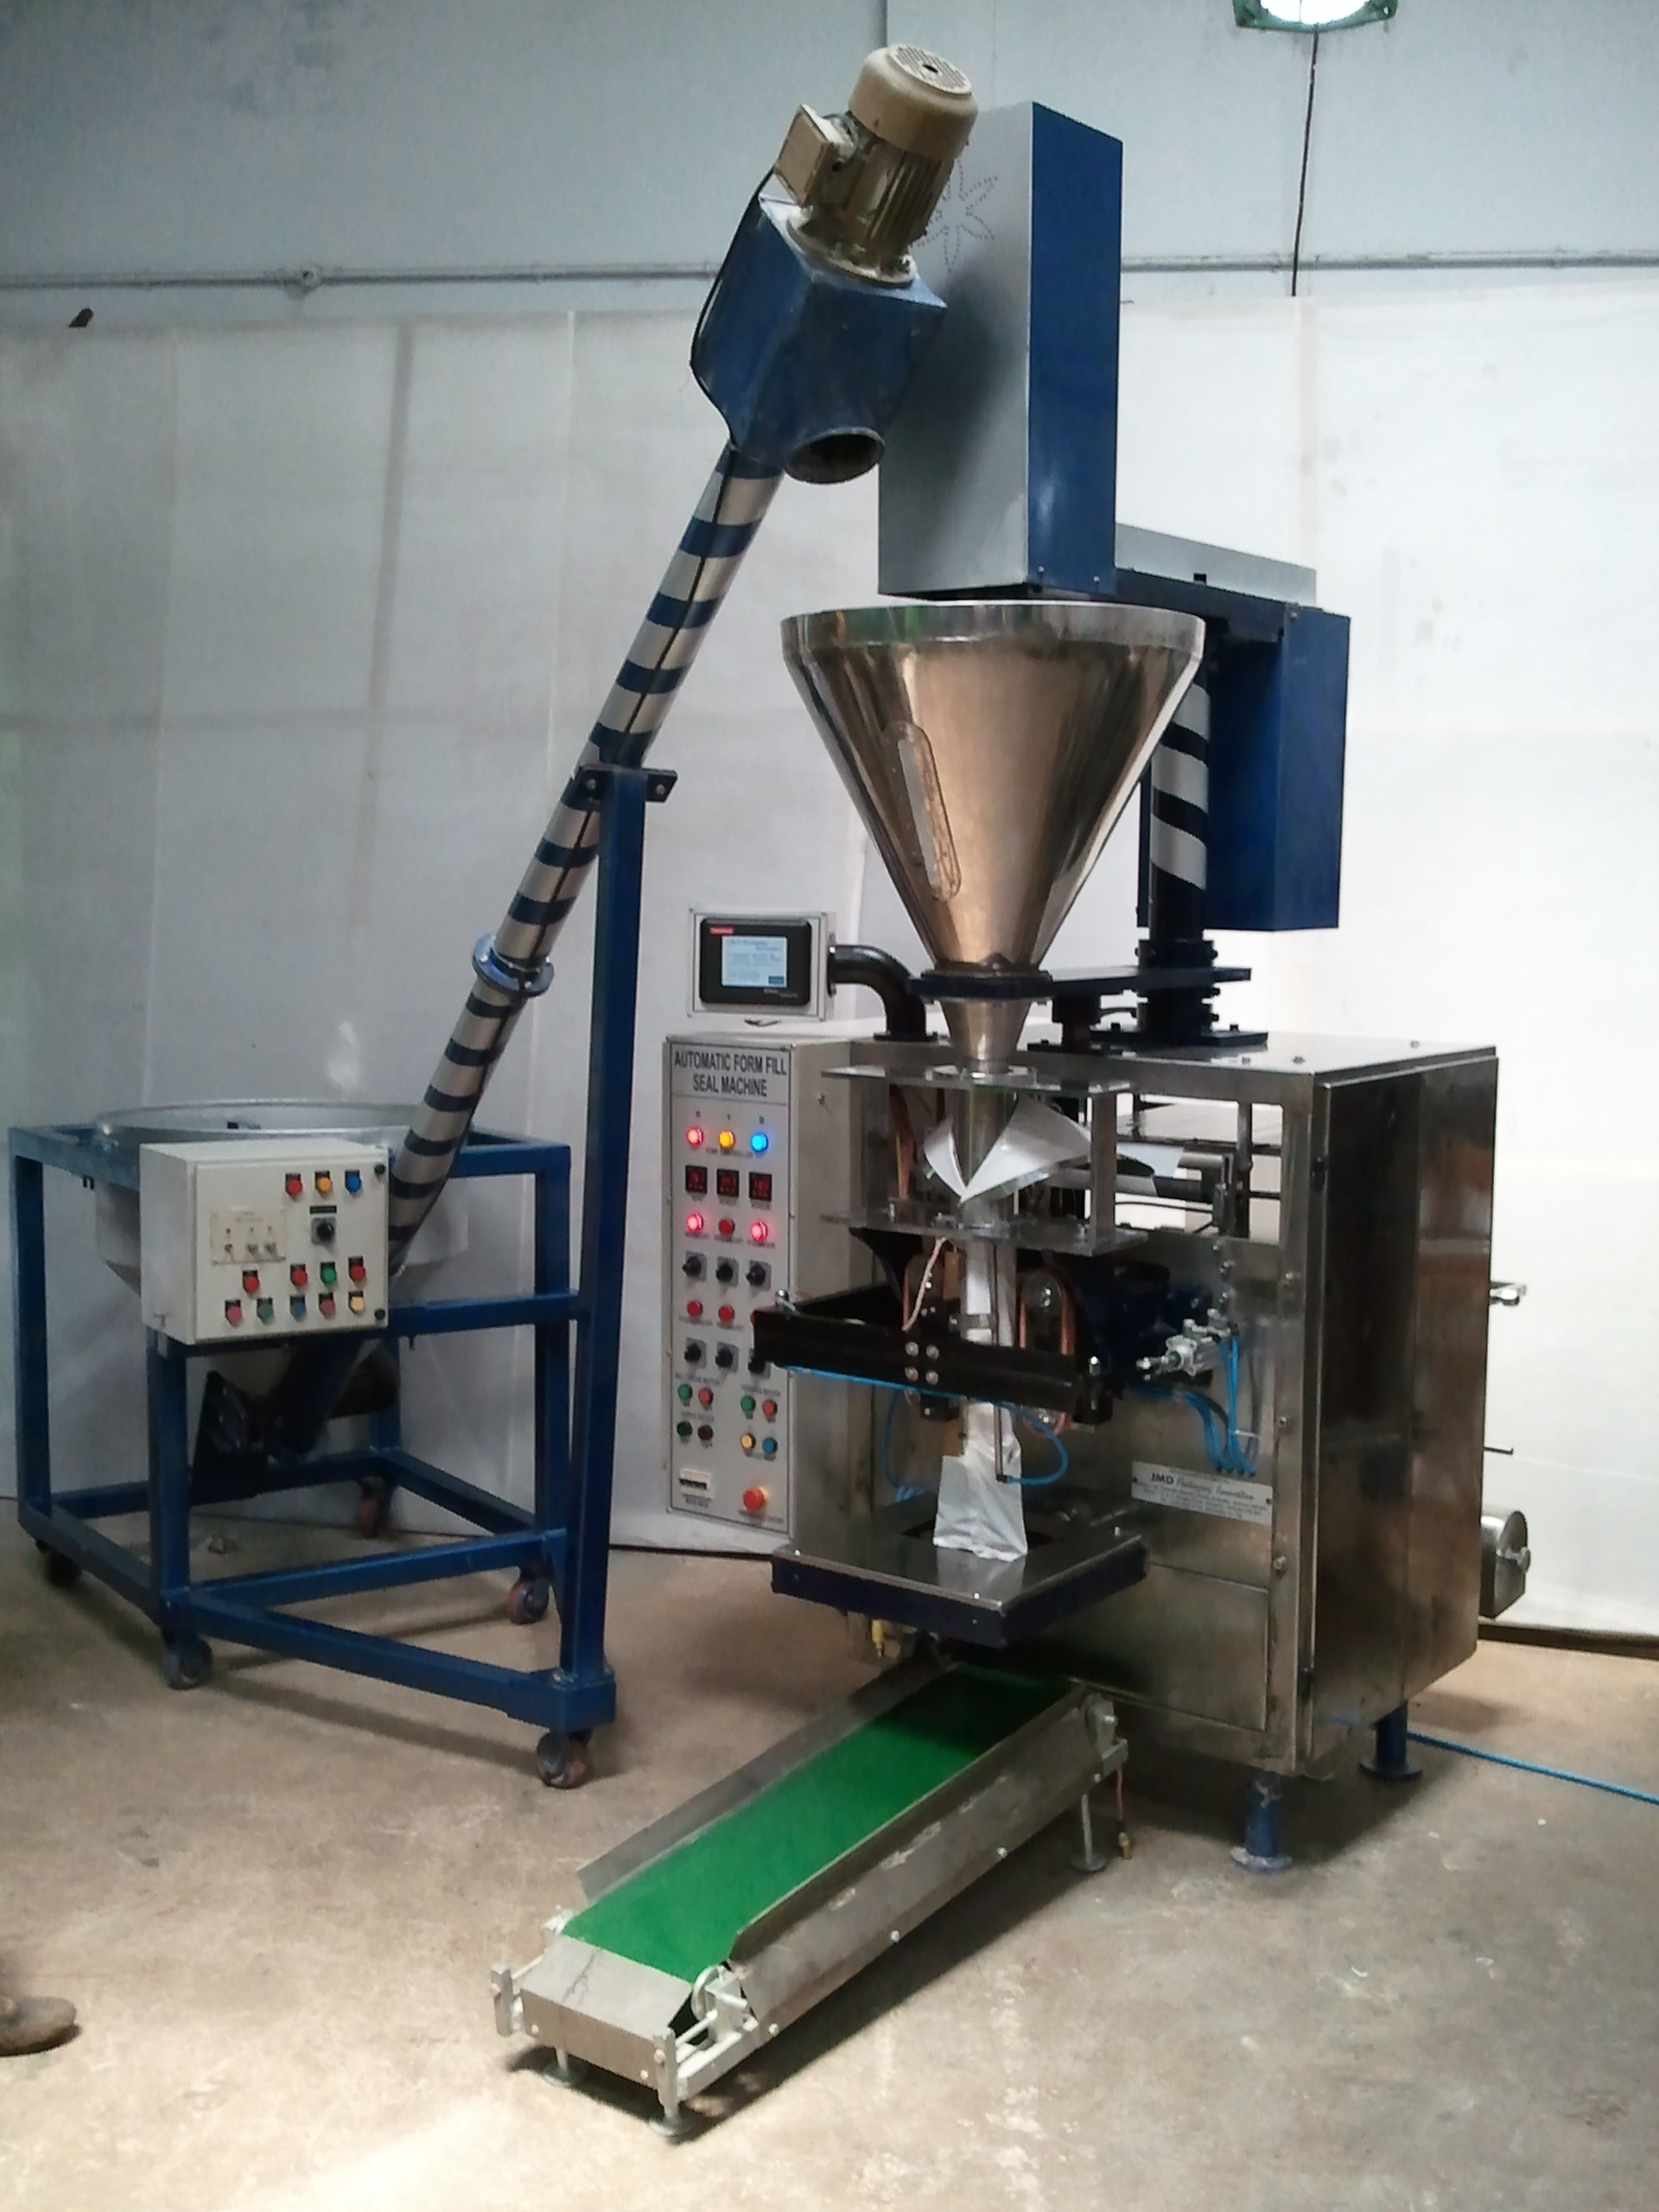 These machines can be used any heat seal-able laminated films like: Polyester Poly Paper Foil BOPP  Packaging Items Any type of non free flow powder products like ATTA, MAIDA, BESAN, SATTU, Spice, FERTILISERS, PESTICIDES, MUSHROOM POWDERS, MEHENDI etc.  Technical Specification Out Put – Up to 100 BPM Filling Capacity – 5 gm – 1 kg Filling Type – SERVO DRIVES/CLUTCH BRAKE DRIVES Sealing Type – Fin Seal / Lap Seal Packaging Materials – LAMINATES/LDPE/ANY HEAT SEALABLE PACKING MATERIALS Machine Weights – 750 – 800 kg (APROX) Machine Dimension – WIDTH – 1250 mm, LENGTH – 2700 mm Depth – 1800 mm. (ADJUSTABLE)